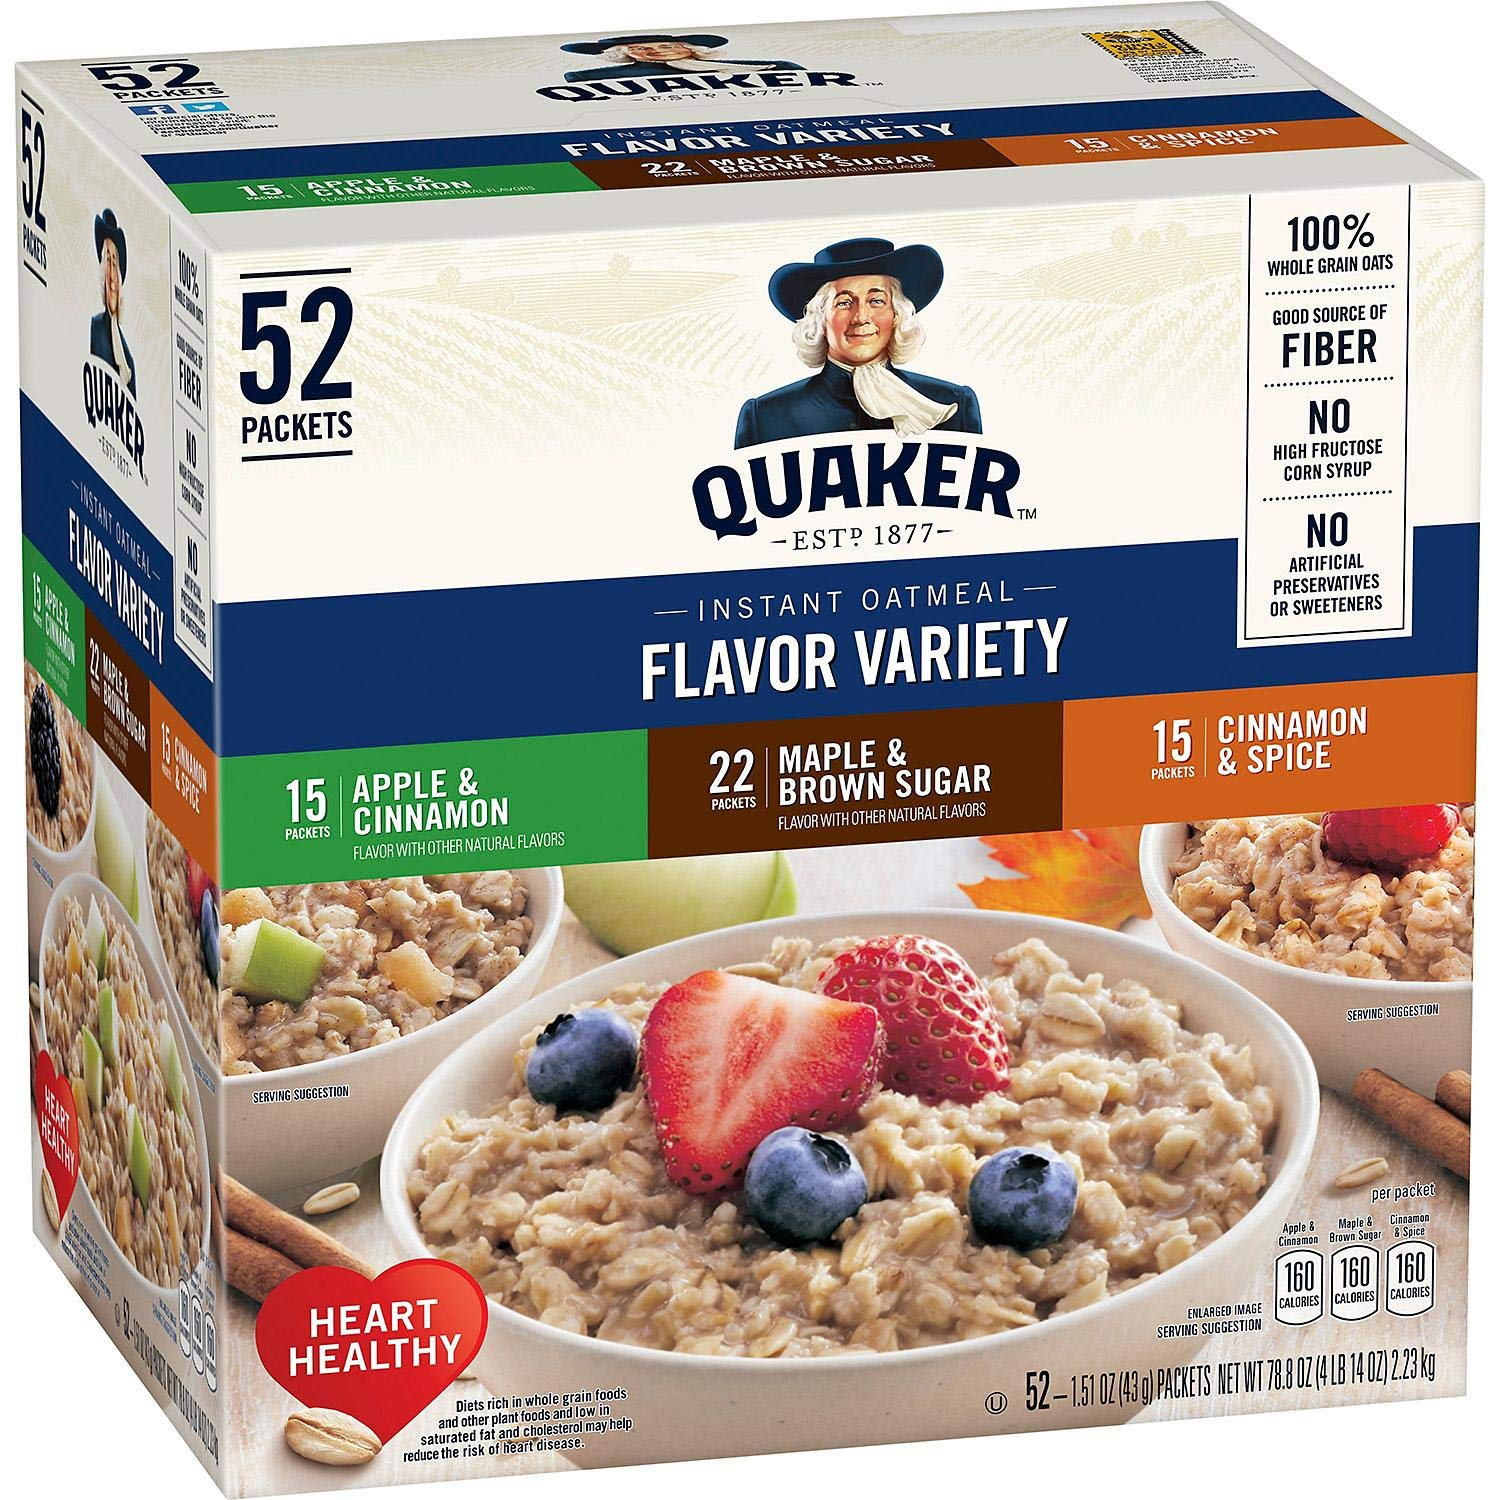 QUAKER VARIETY OATMEAL HOT CEREAL INSTANT 76.2 OZ - 0030000561951